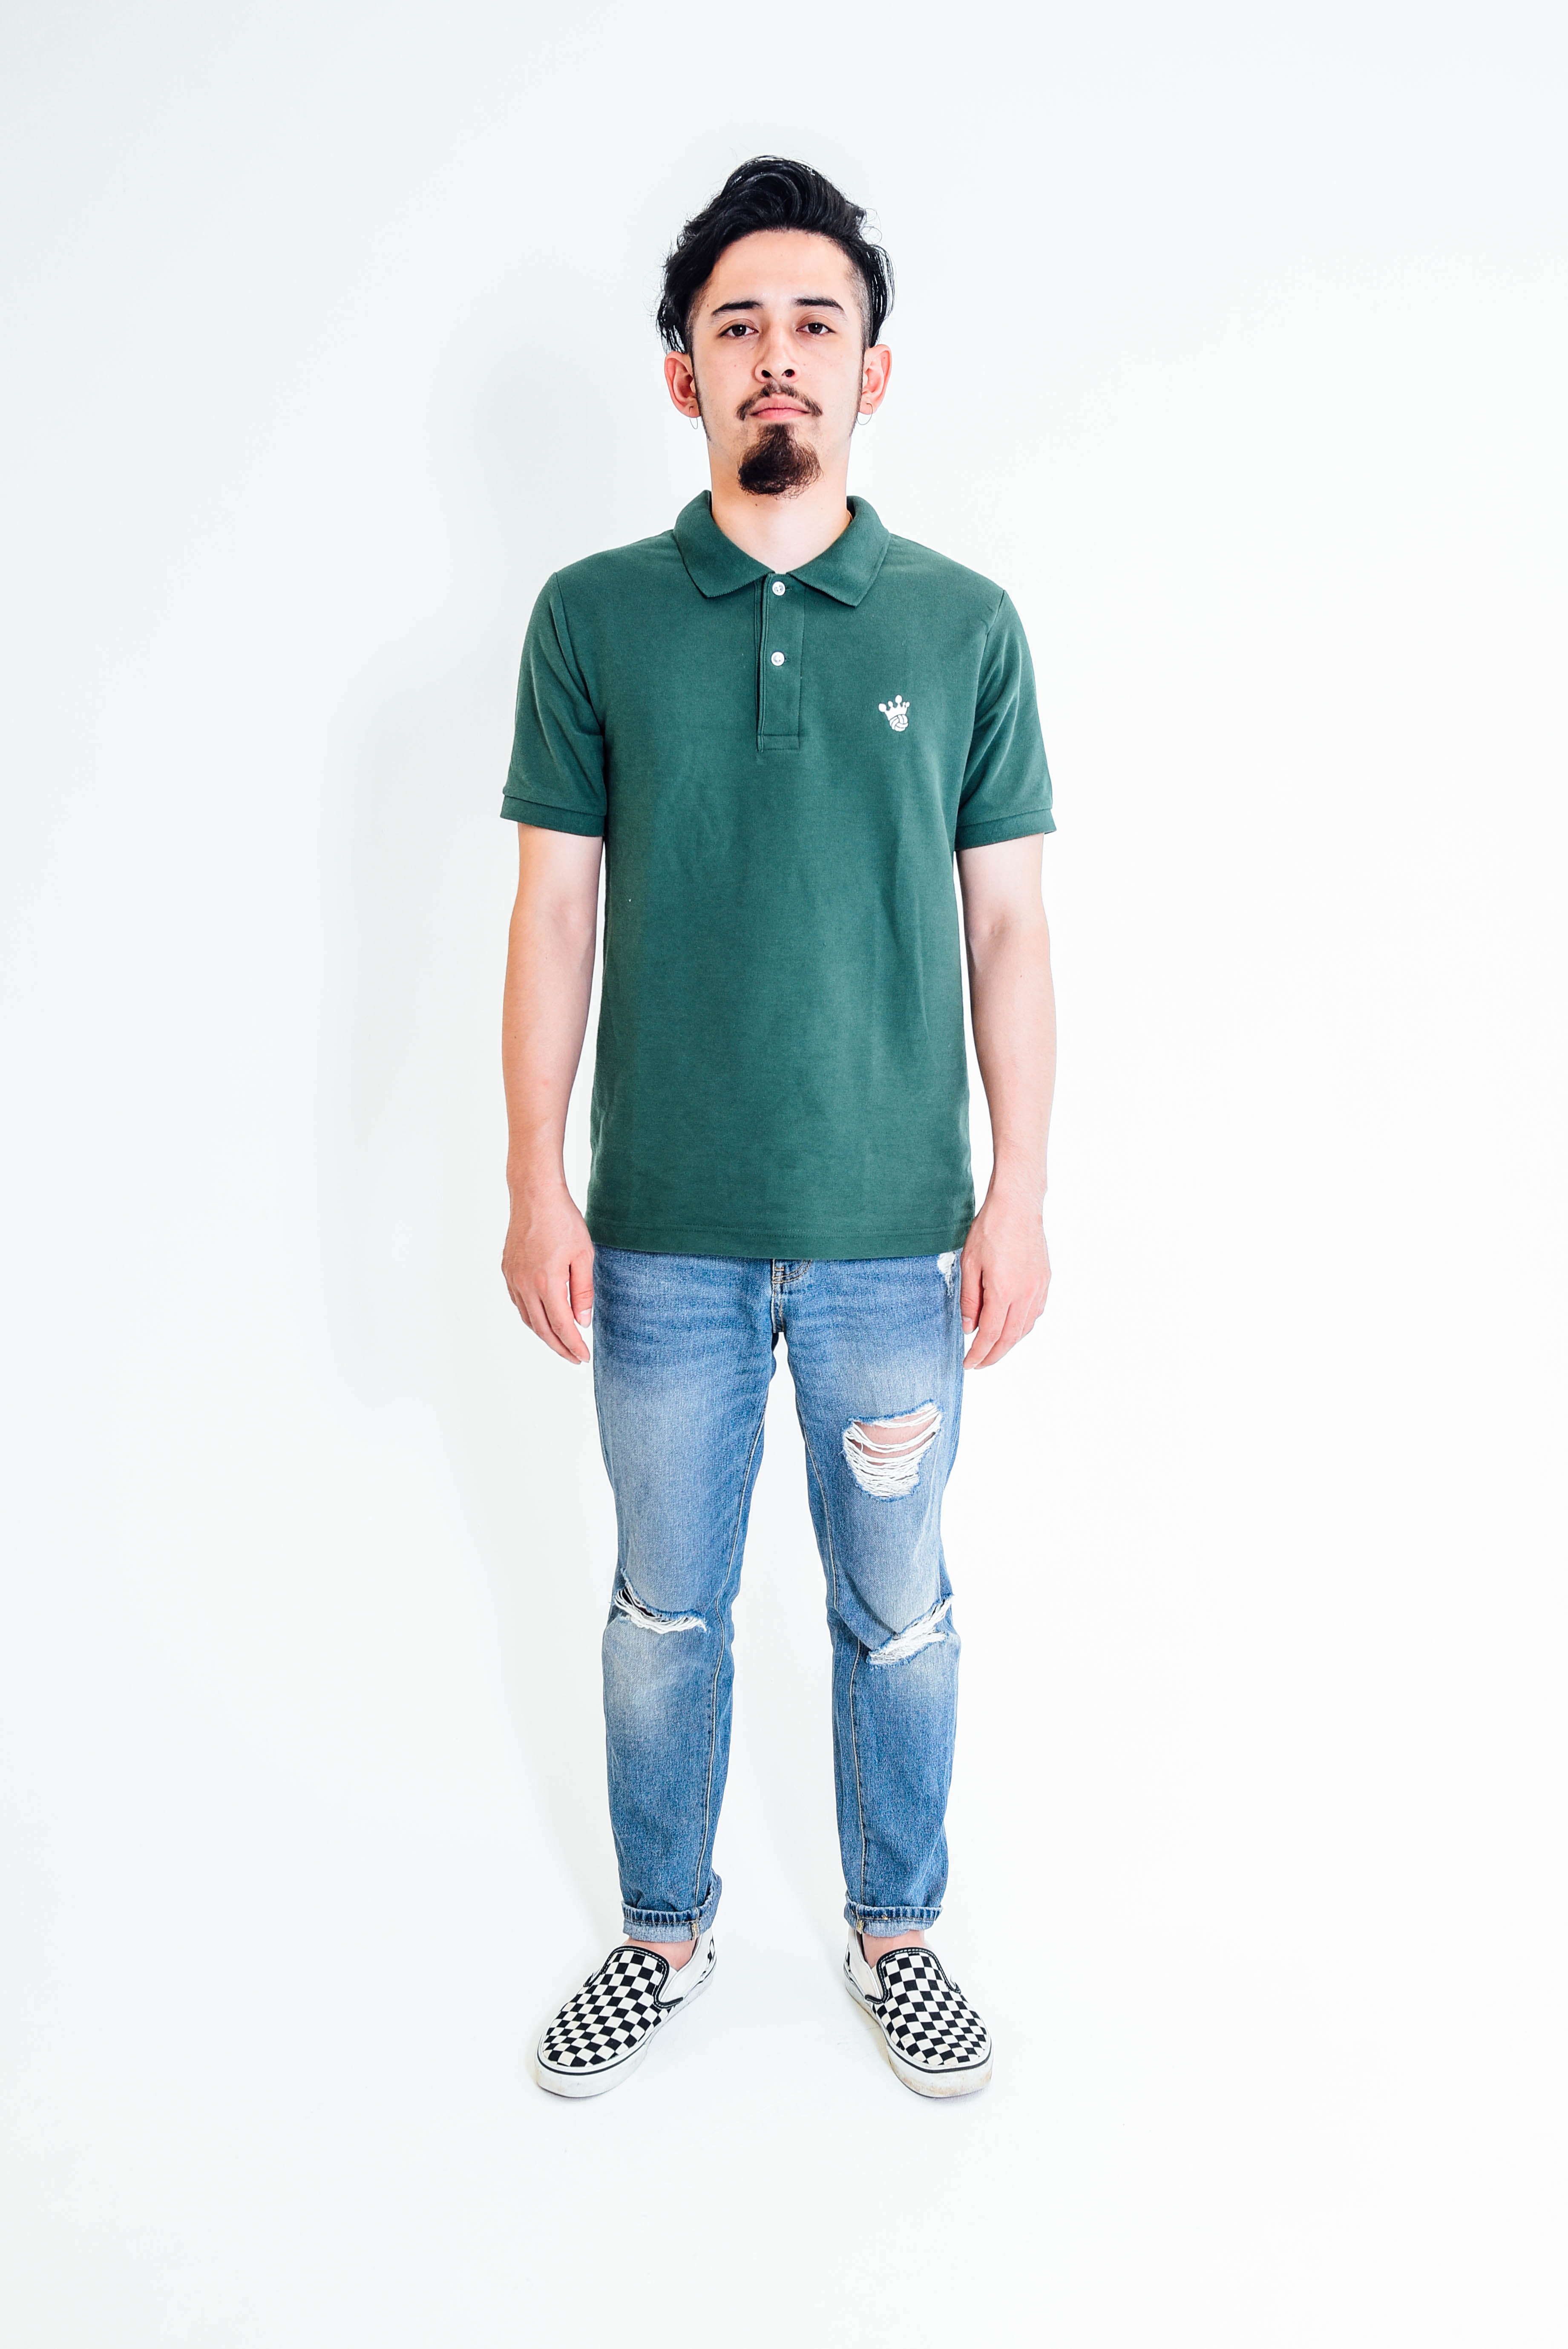 King Logo Polo-Shirt / Green - 画像4